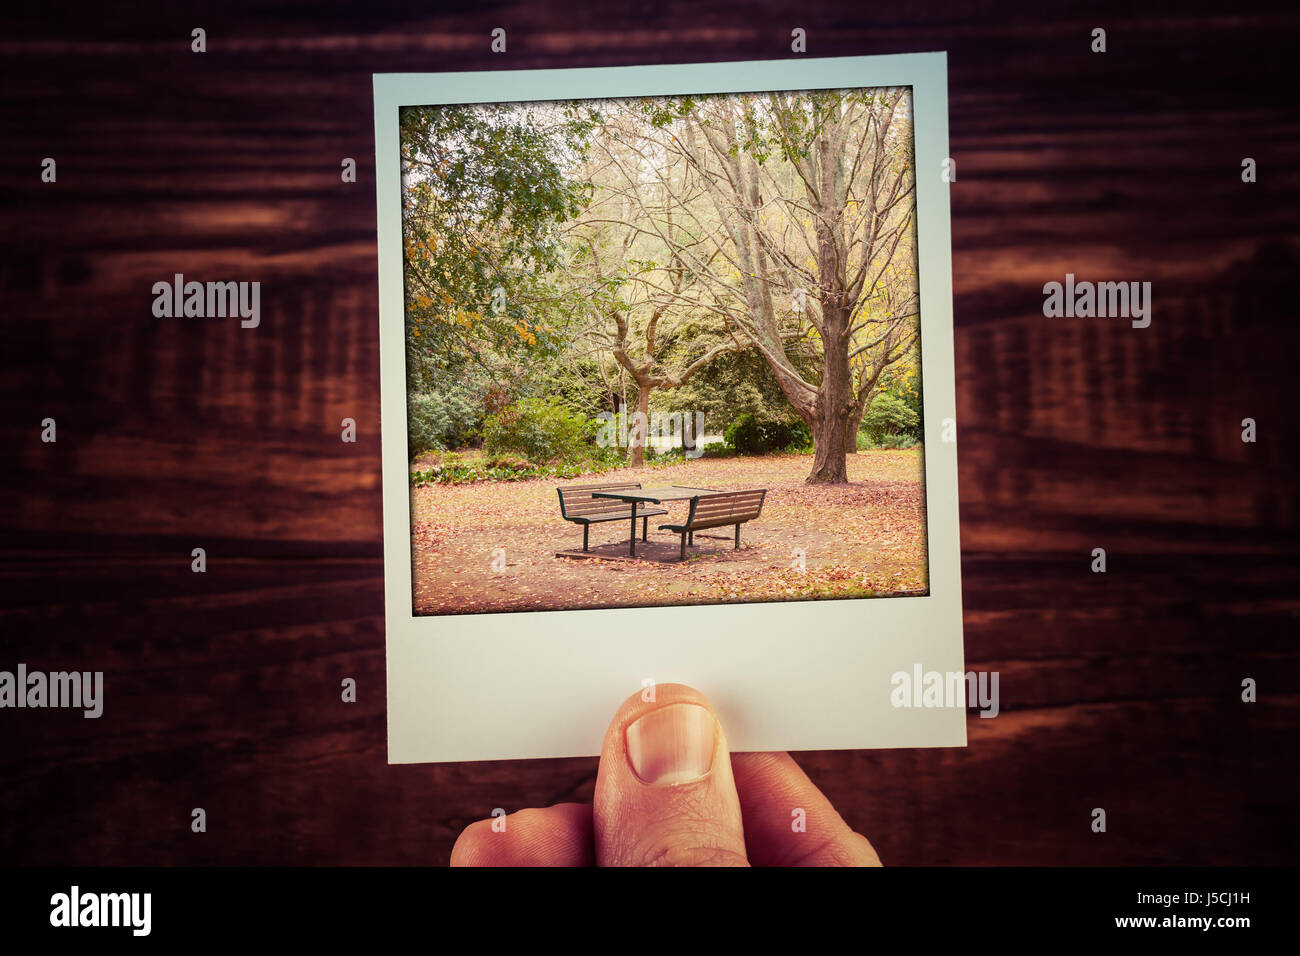 Male hand holding polaroid photo of autumn scene - empty picnic table, foliage, and bare trees with copy space. - Stock Image